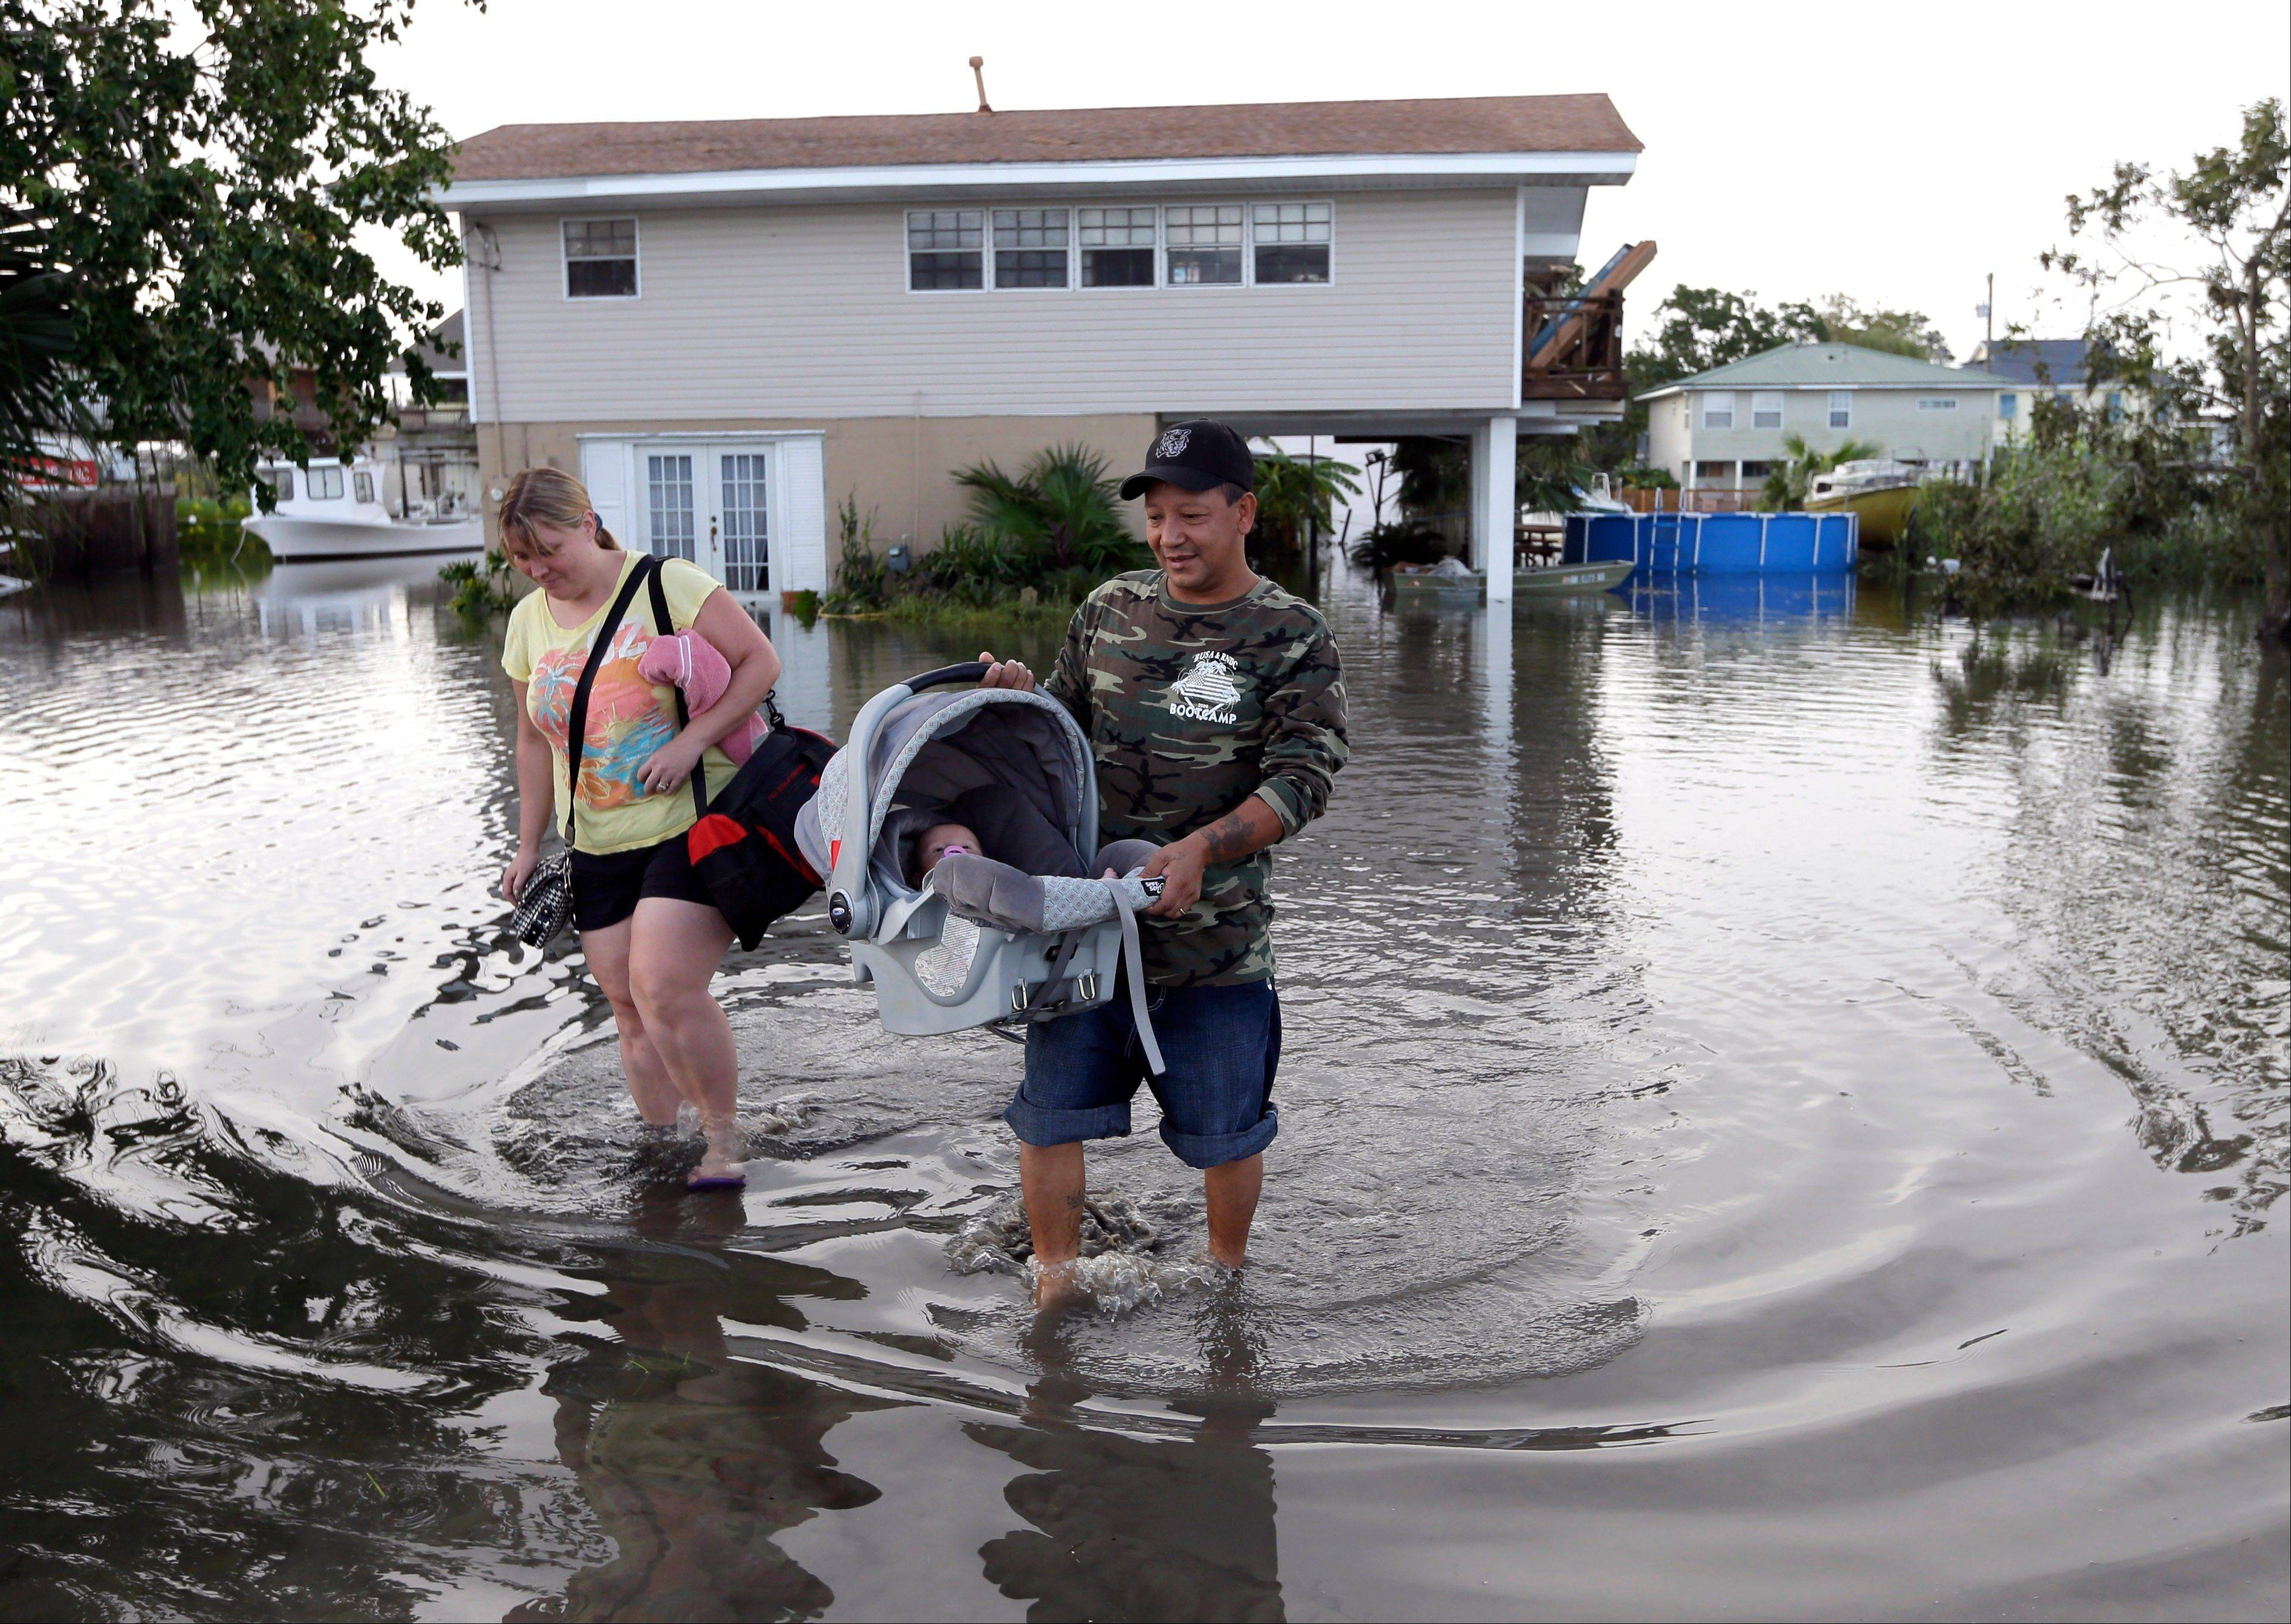 Tony Rodriguez, right, carries his baby daughter Nicole as they and his wife Jodi Clelland leave their flooded home in the aftermath of Hurricane Isaac in Slidell, La., Friday, Aug. 31, 2012. Isaac is now a tropical depression and the center was on track to cross Arkansas on Friday and southern Missouri on Friday night, spreading rain as it goes.